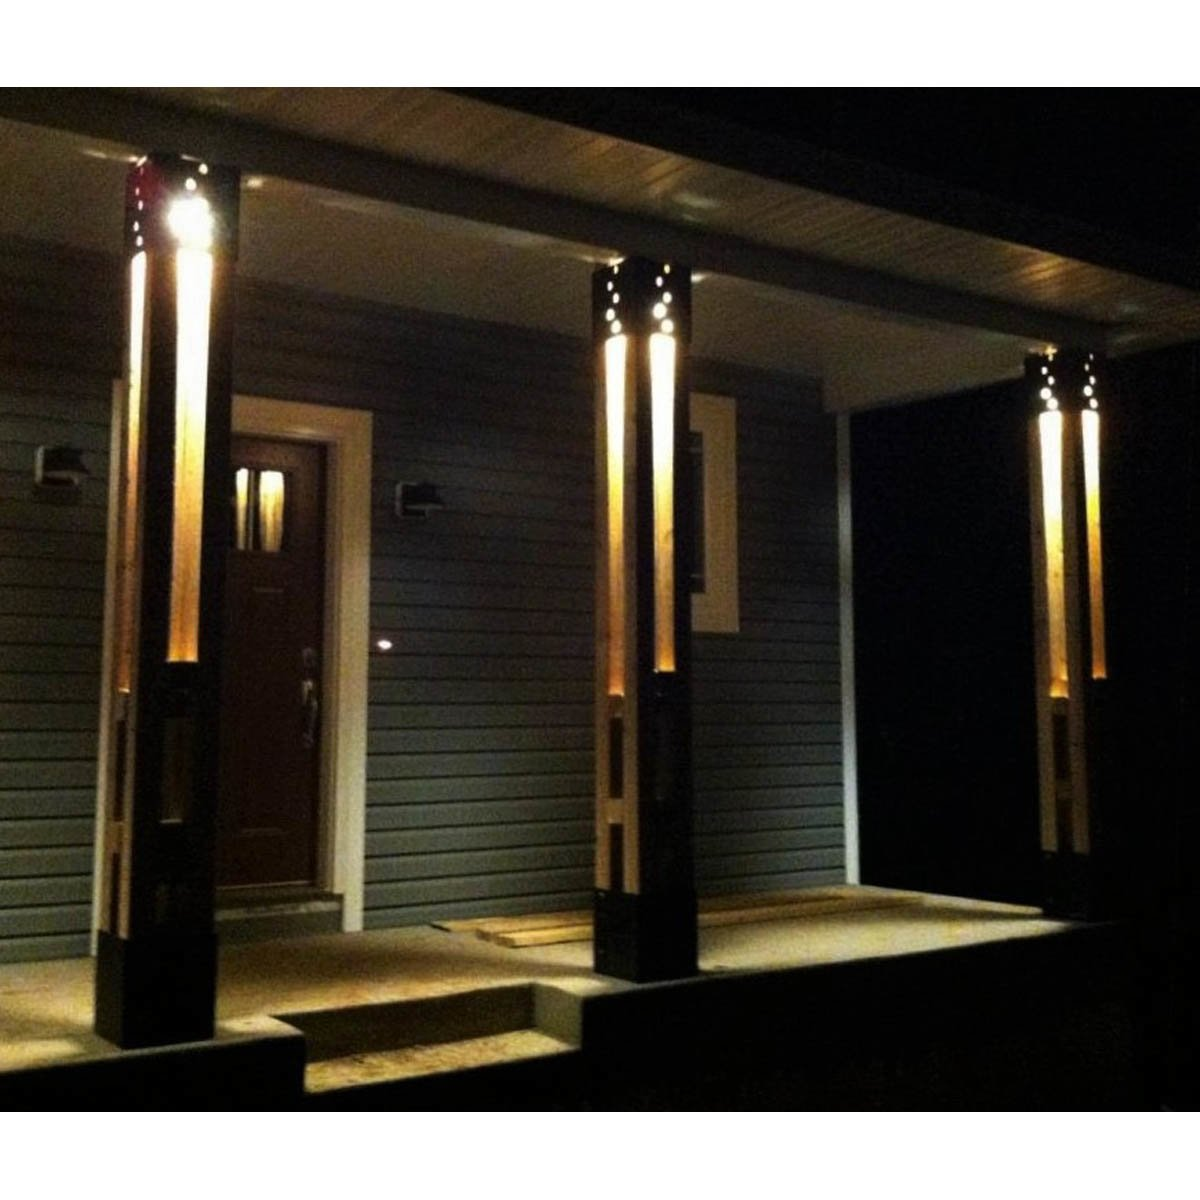 4 Piece Column Light Brackets Installed with Lighting